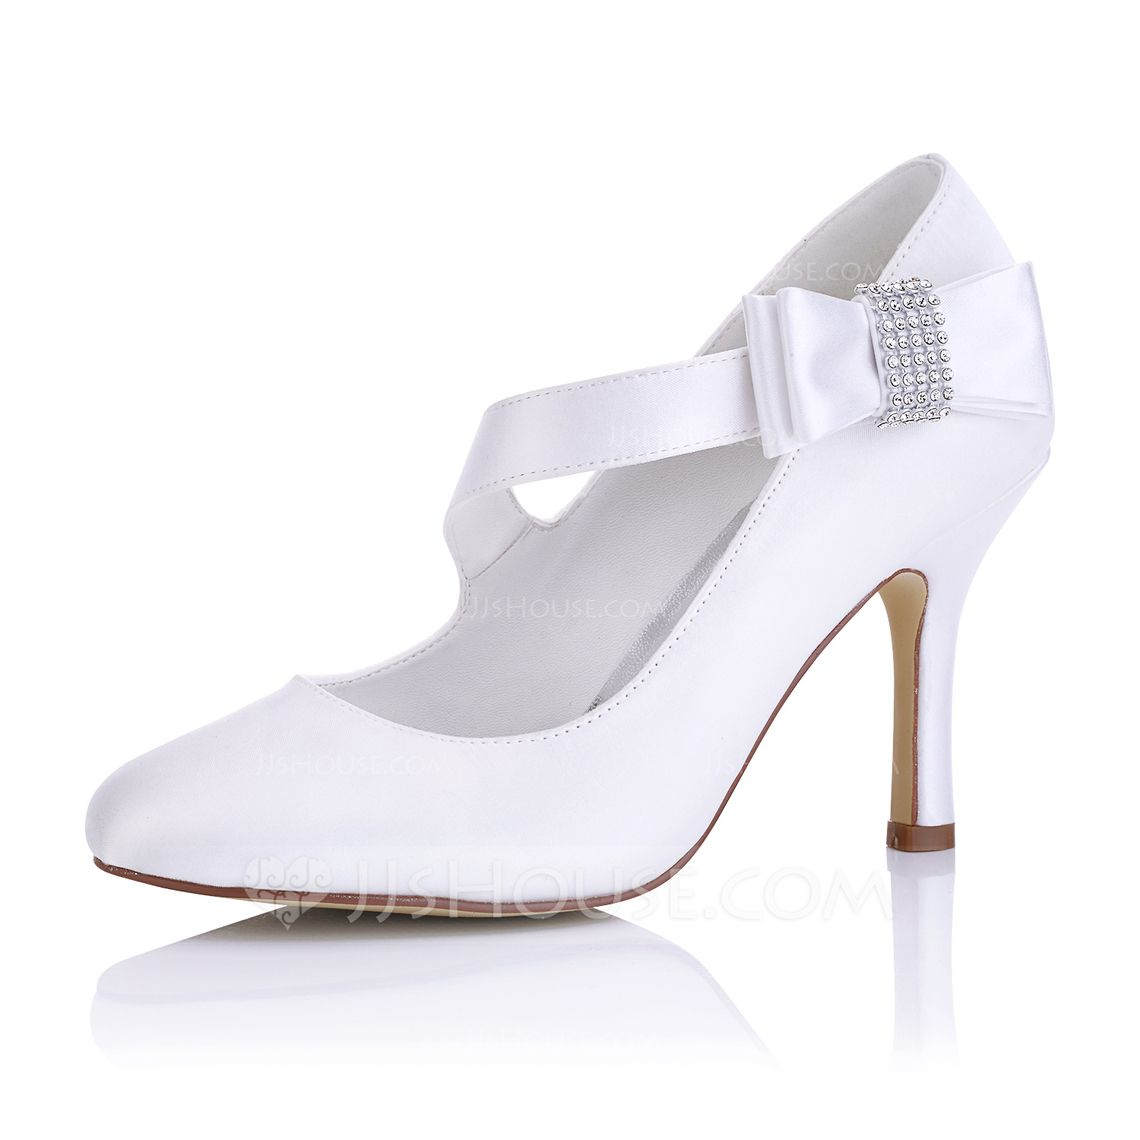 2aec4912 Kvinder Satin Stiletto Hæl Pumps med Andre (047102653) | Wedding shoes